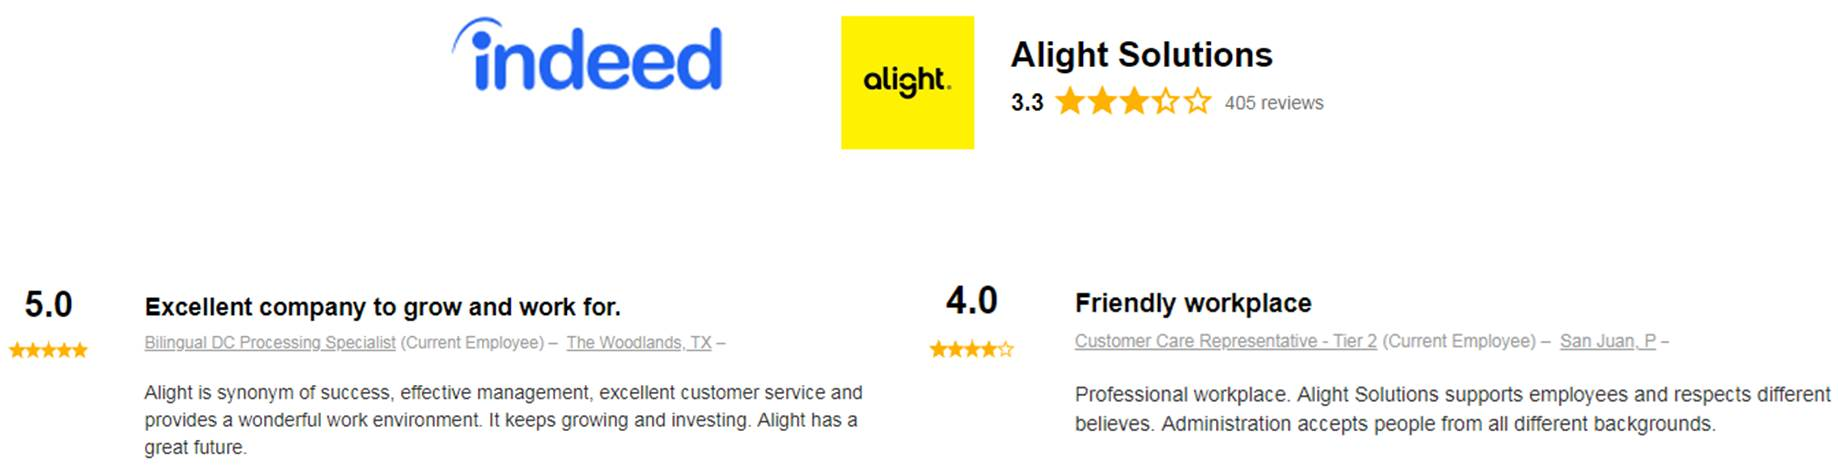 Alight reviews on Indeed